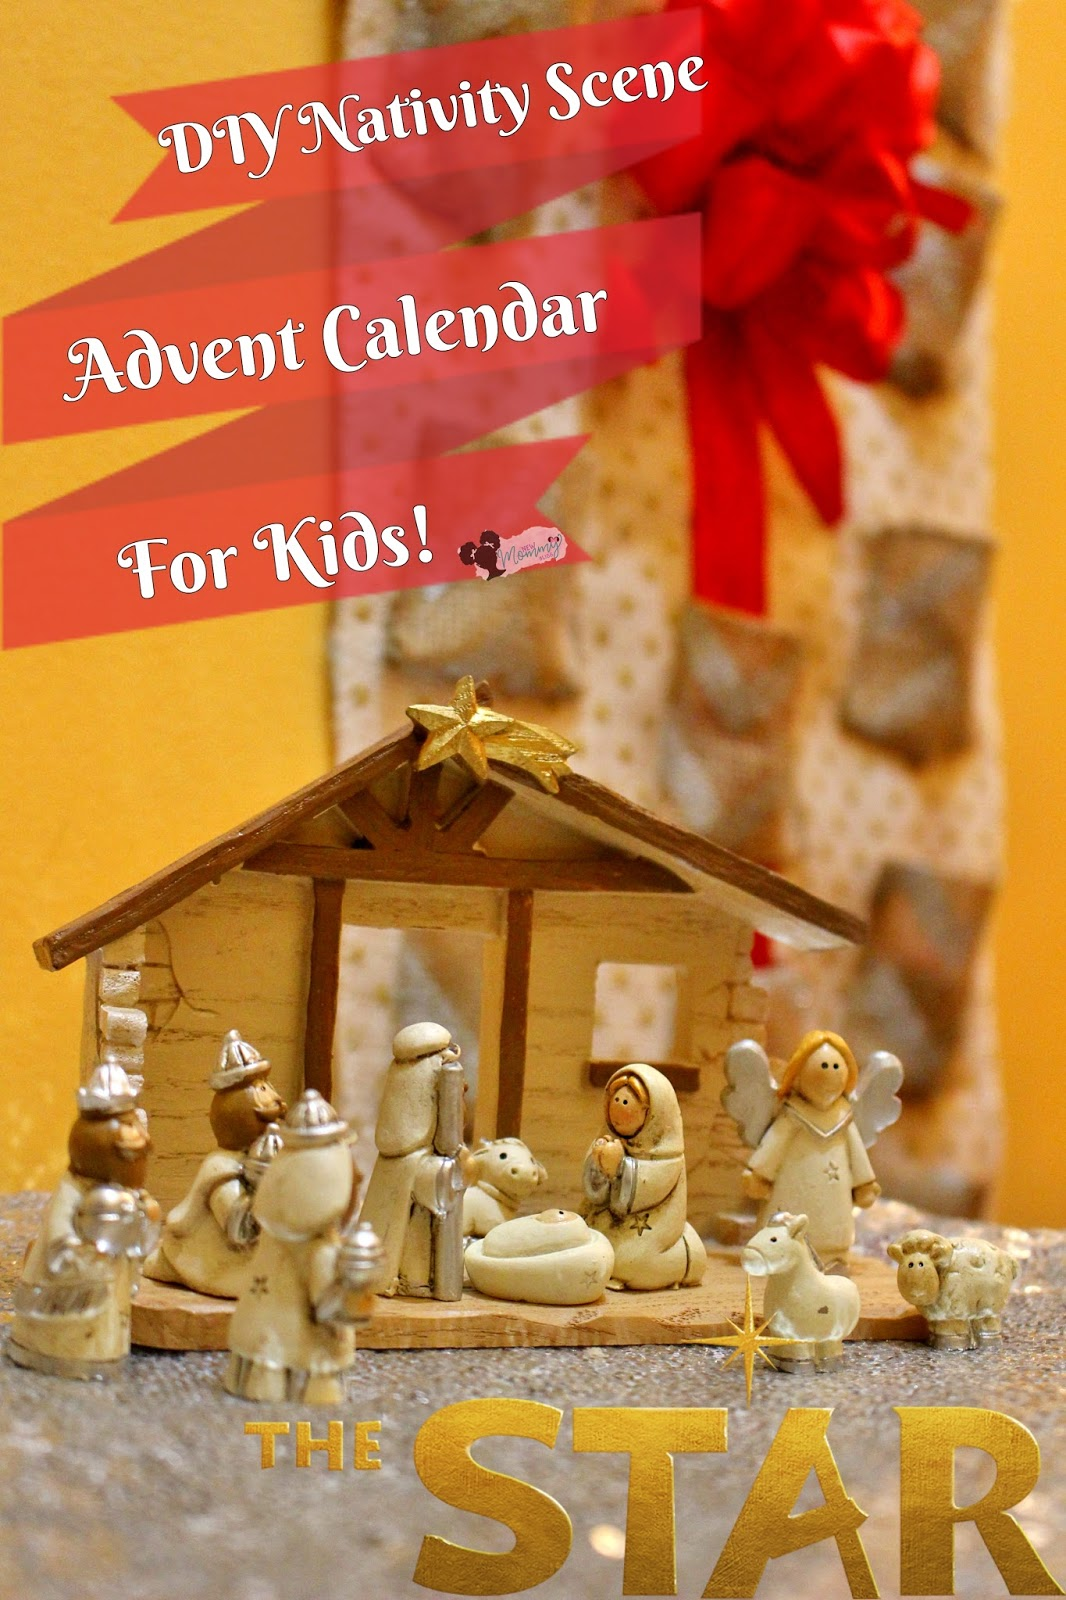 November Calendar Diy : Diy nativity advent calendar for kids thestar new mommy